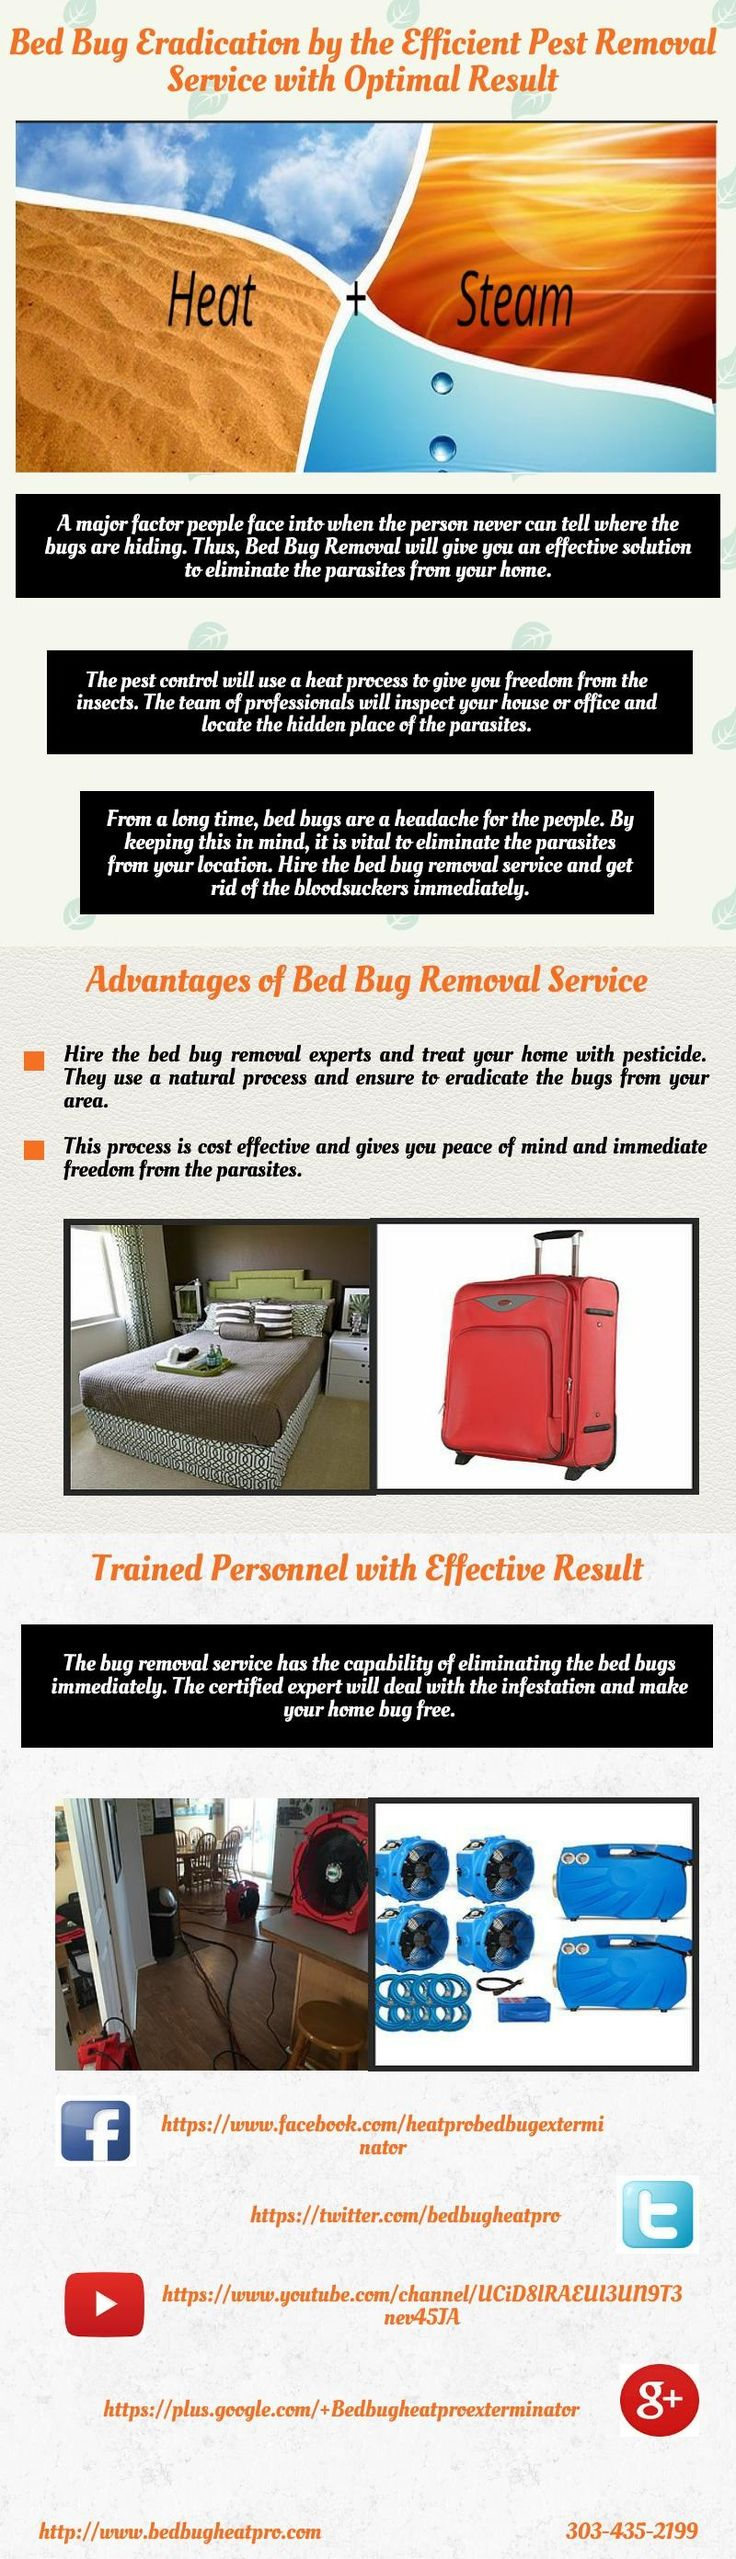 feeding bed security magnified bug control removal service